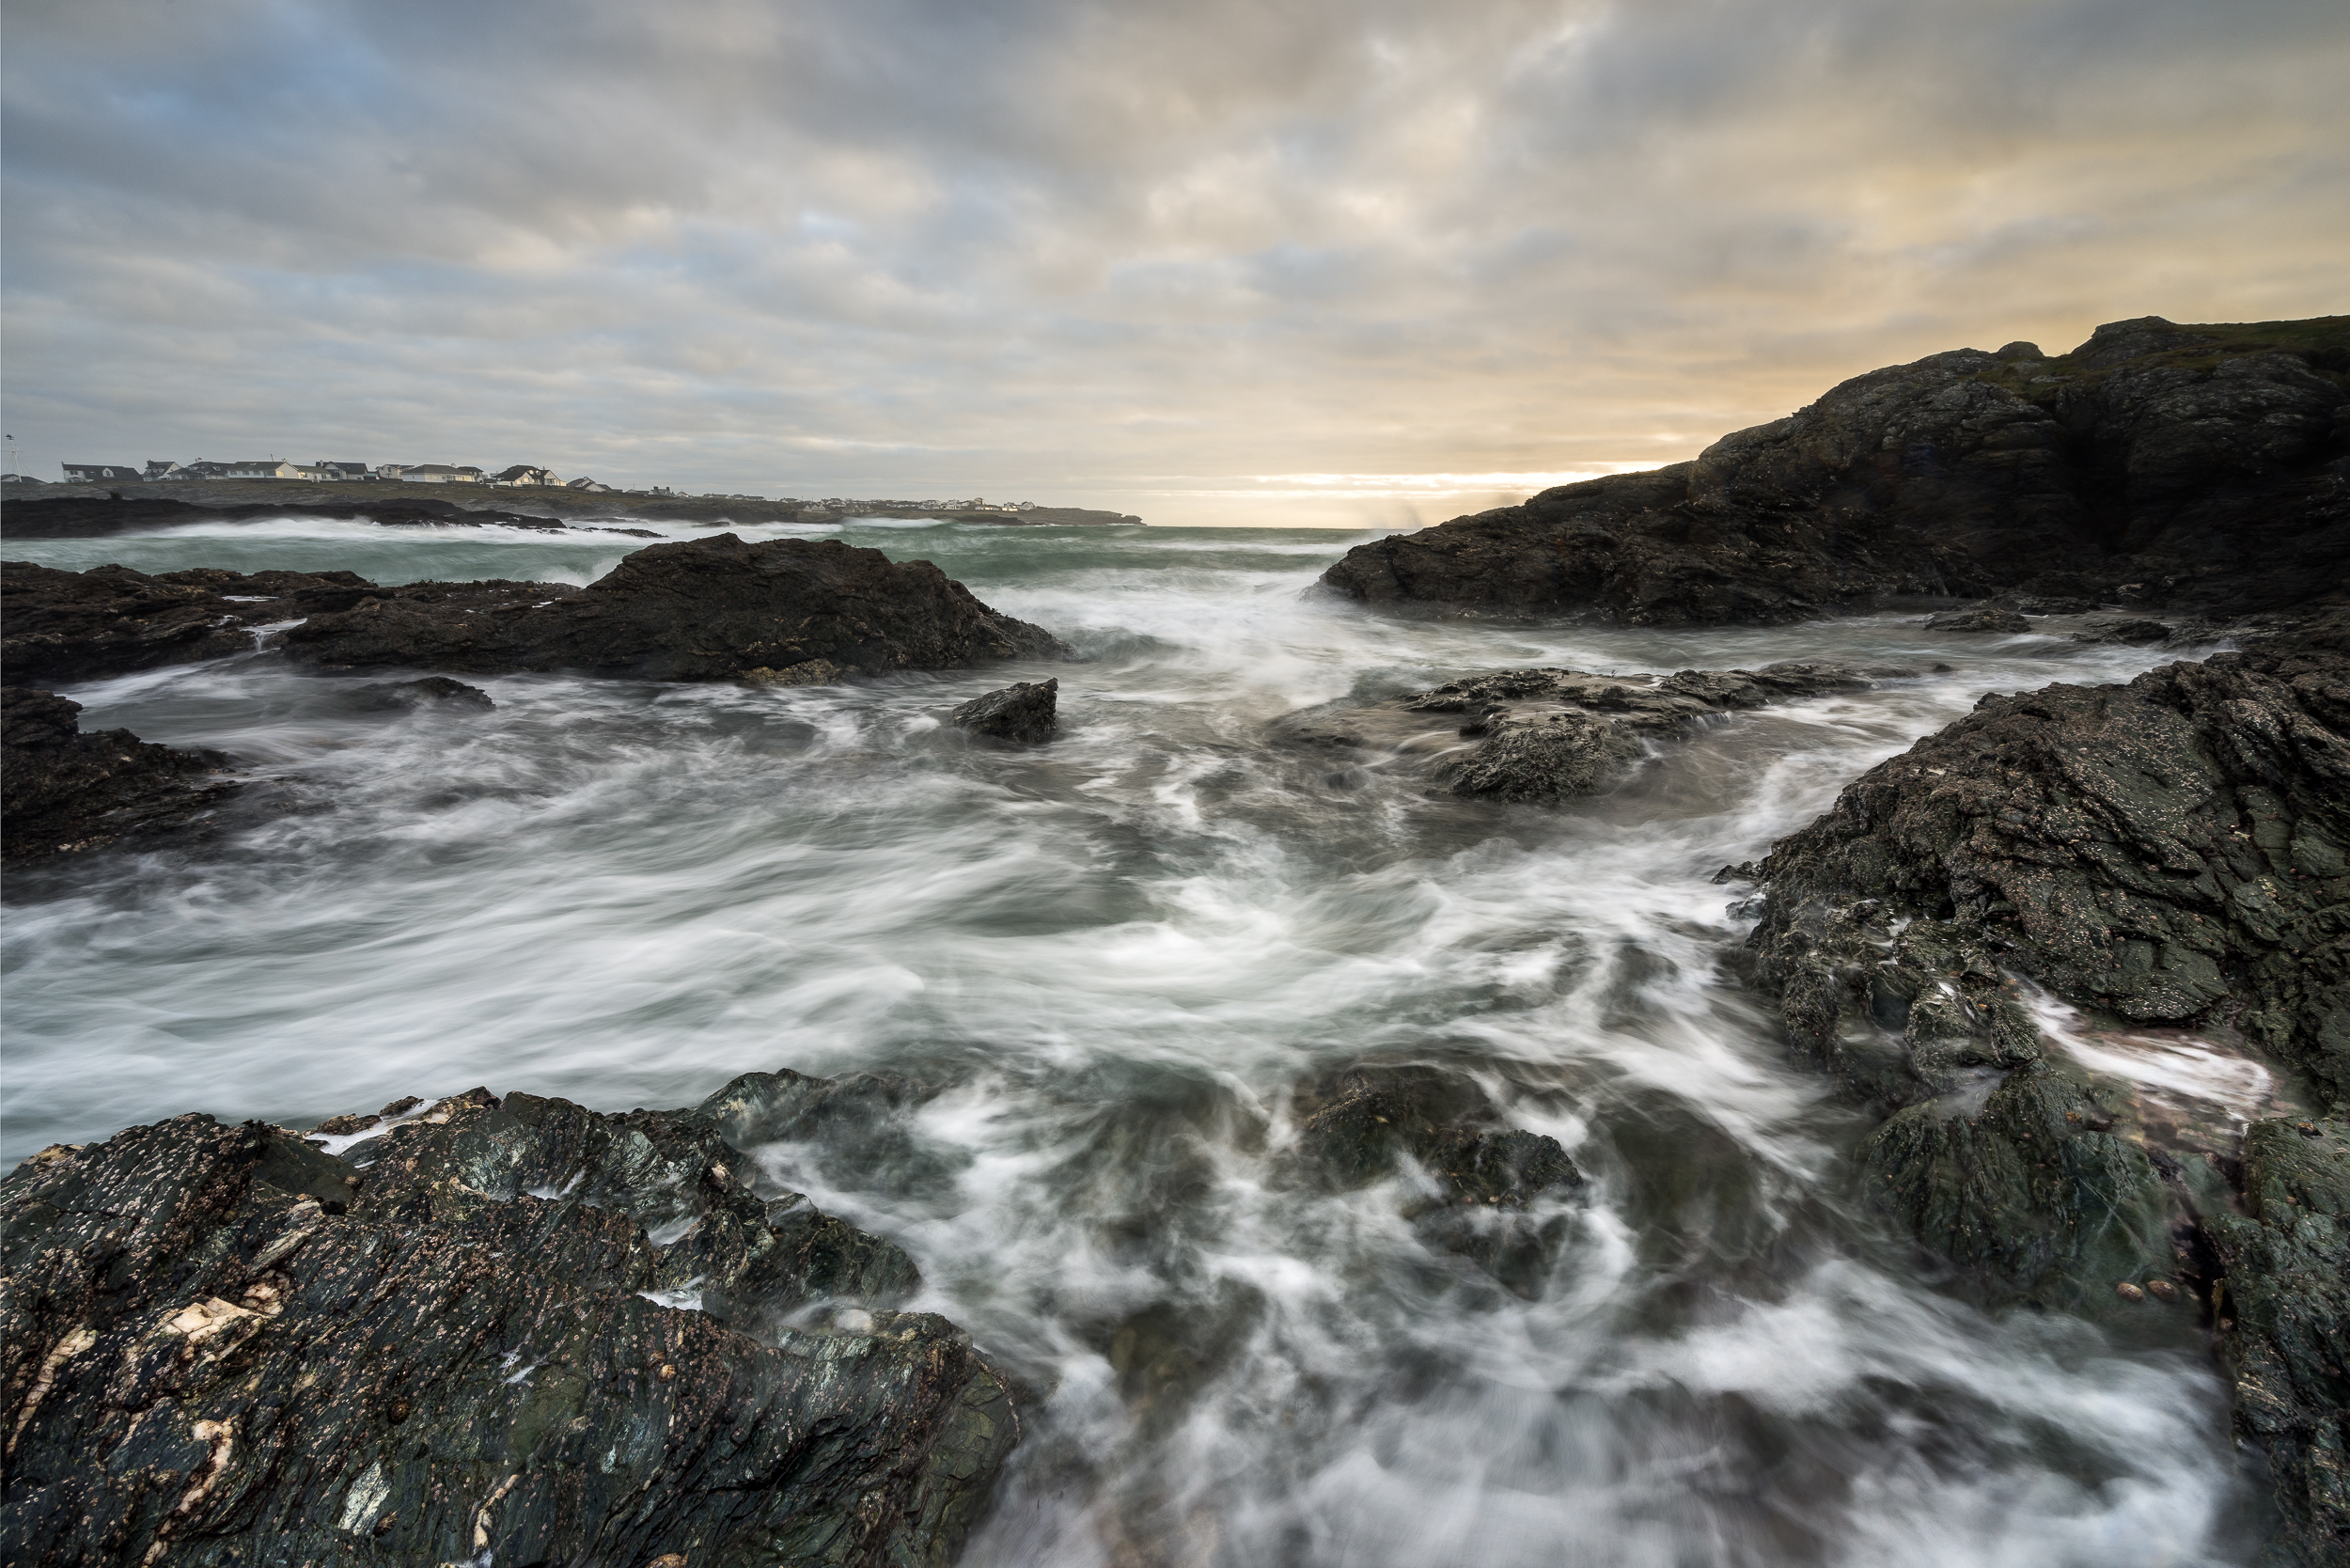 caernafon bay waves (1 of 1).jpg